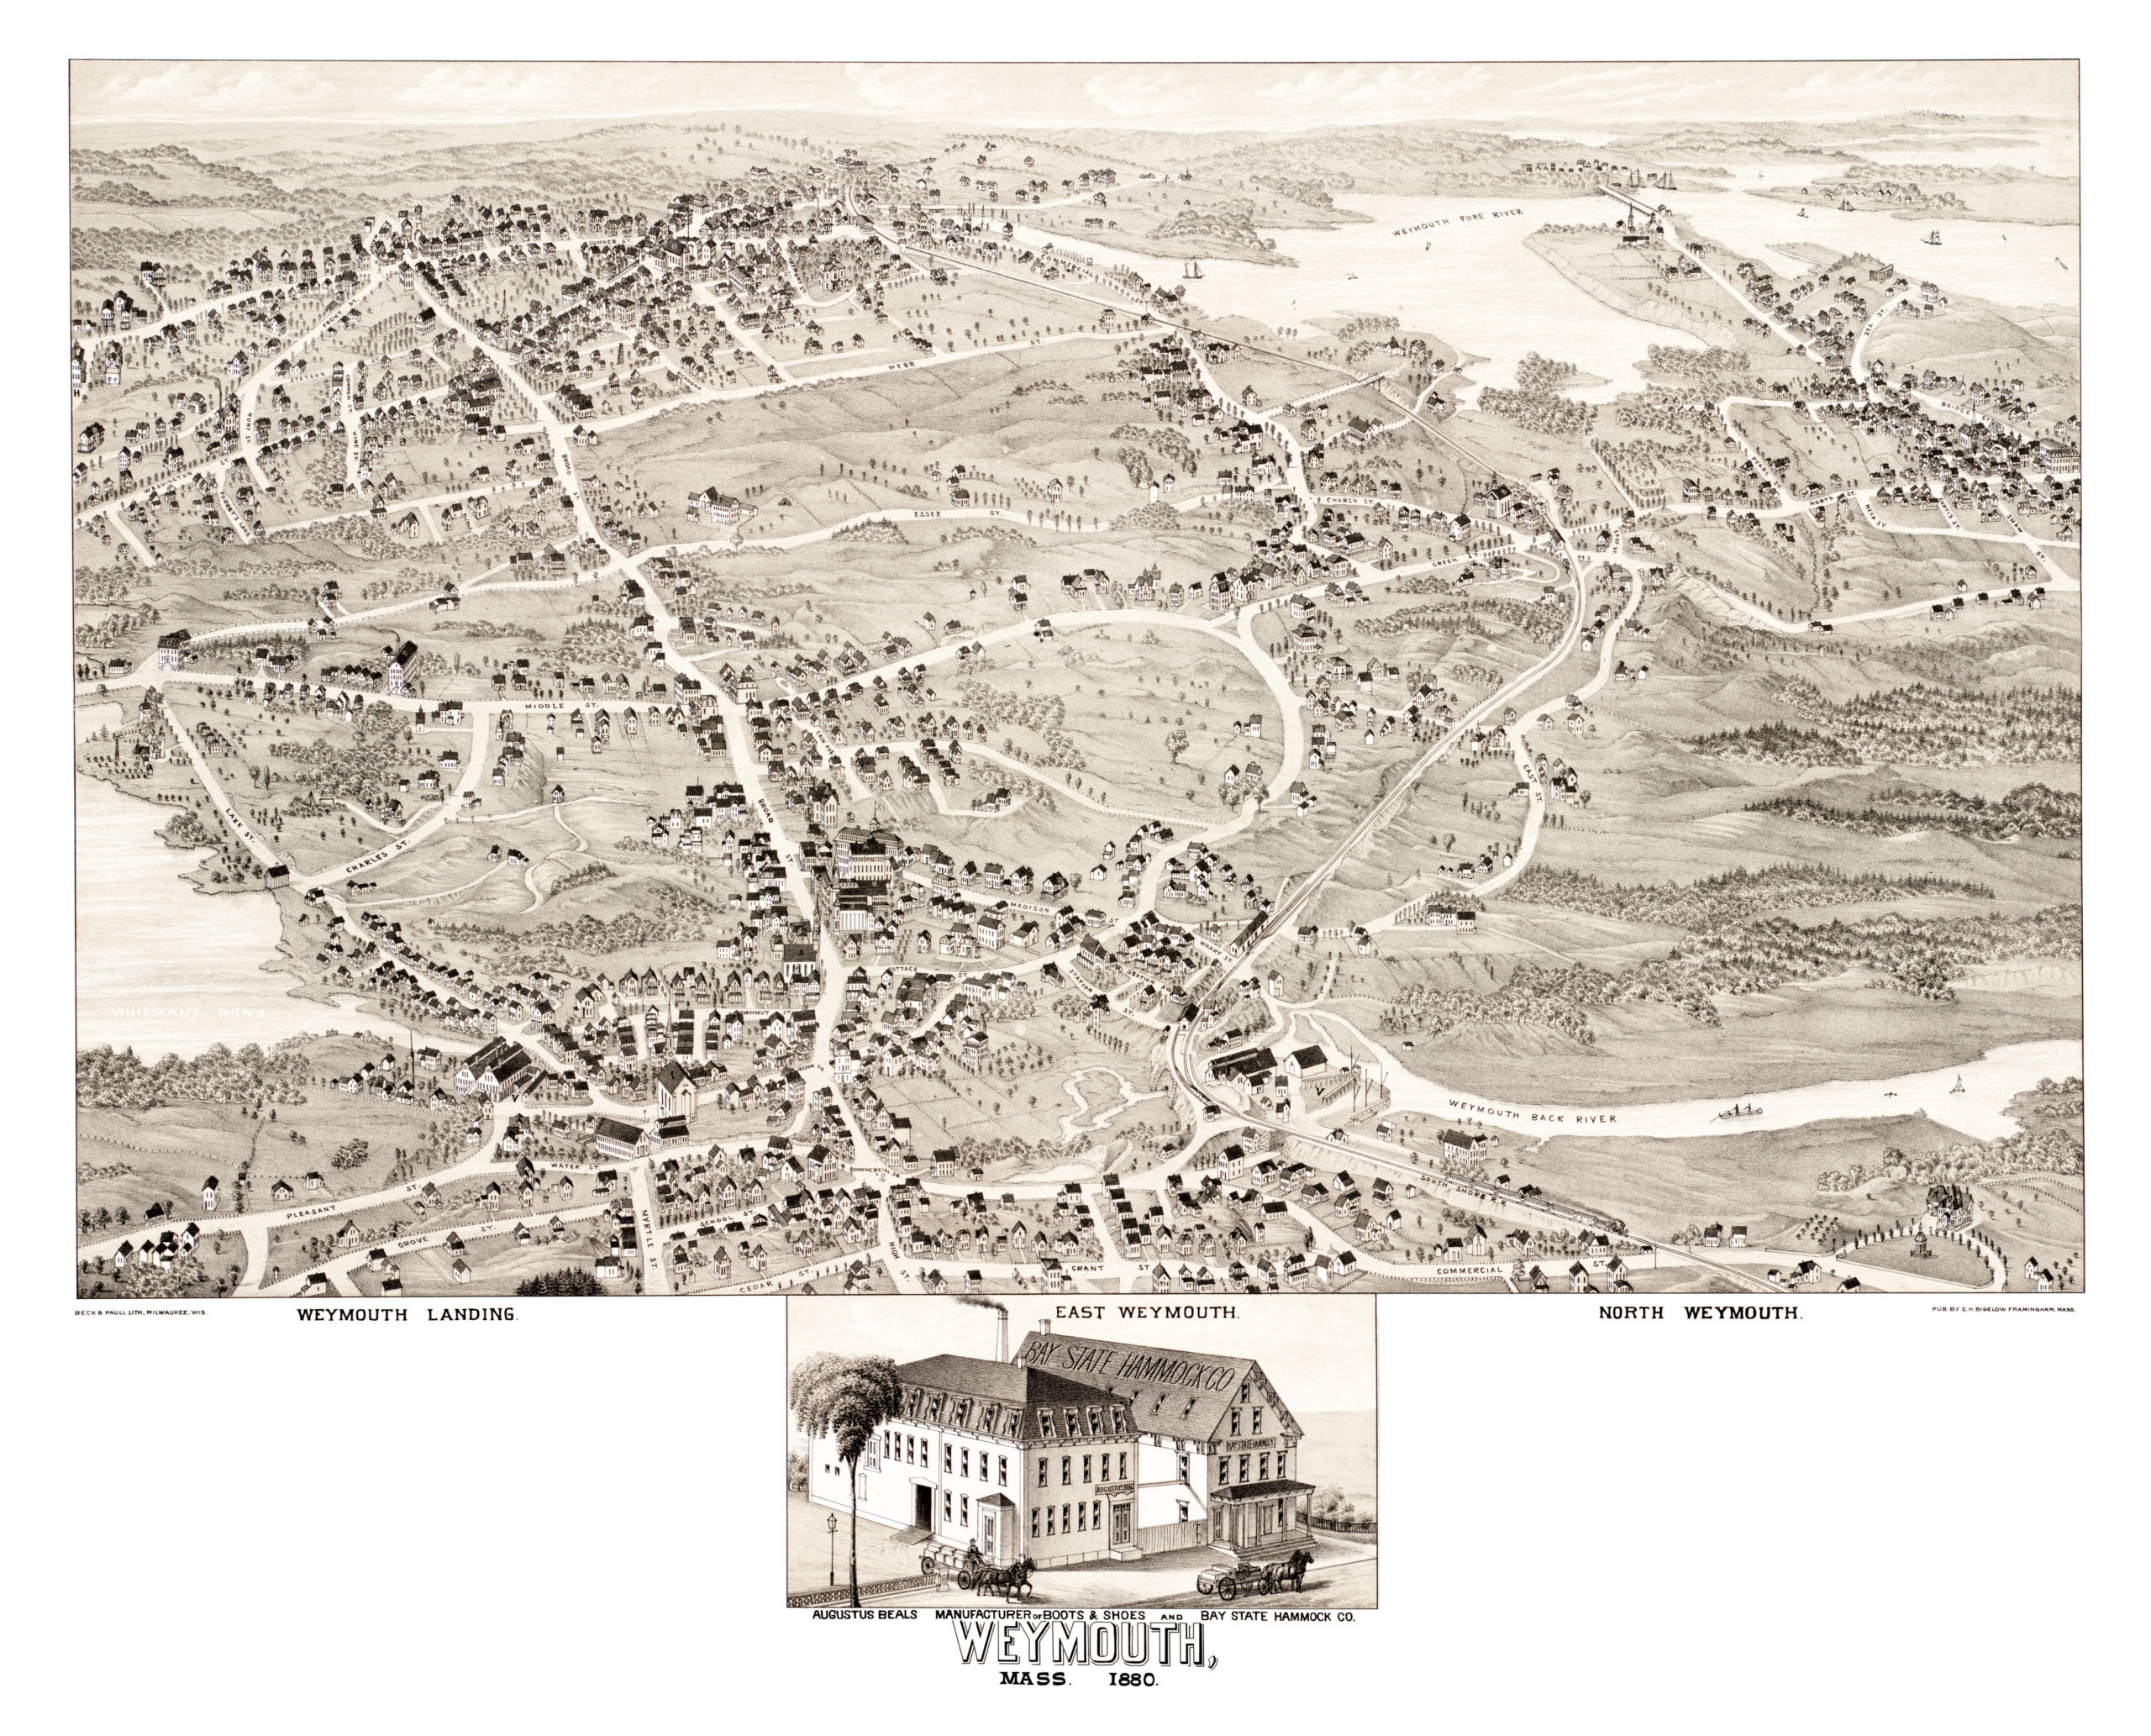 Historical Map Of Weymouth Massachusetts From KNOWOL - Historical wall maps